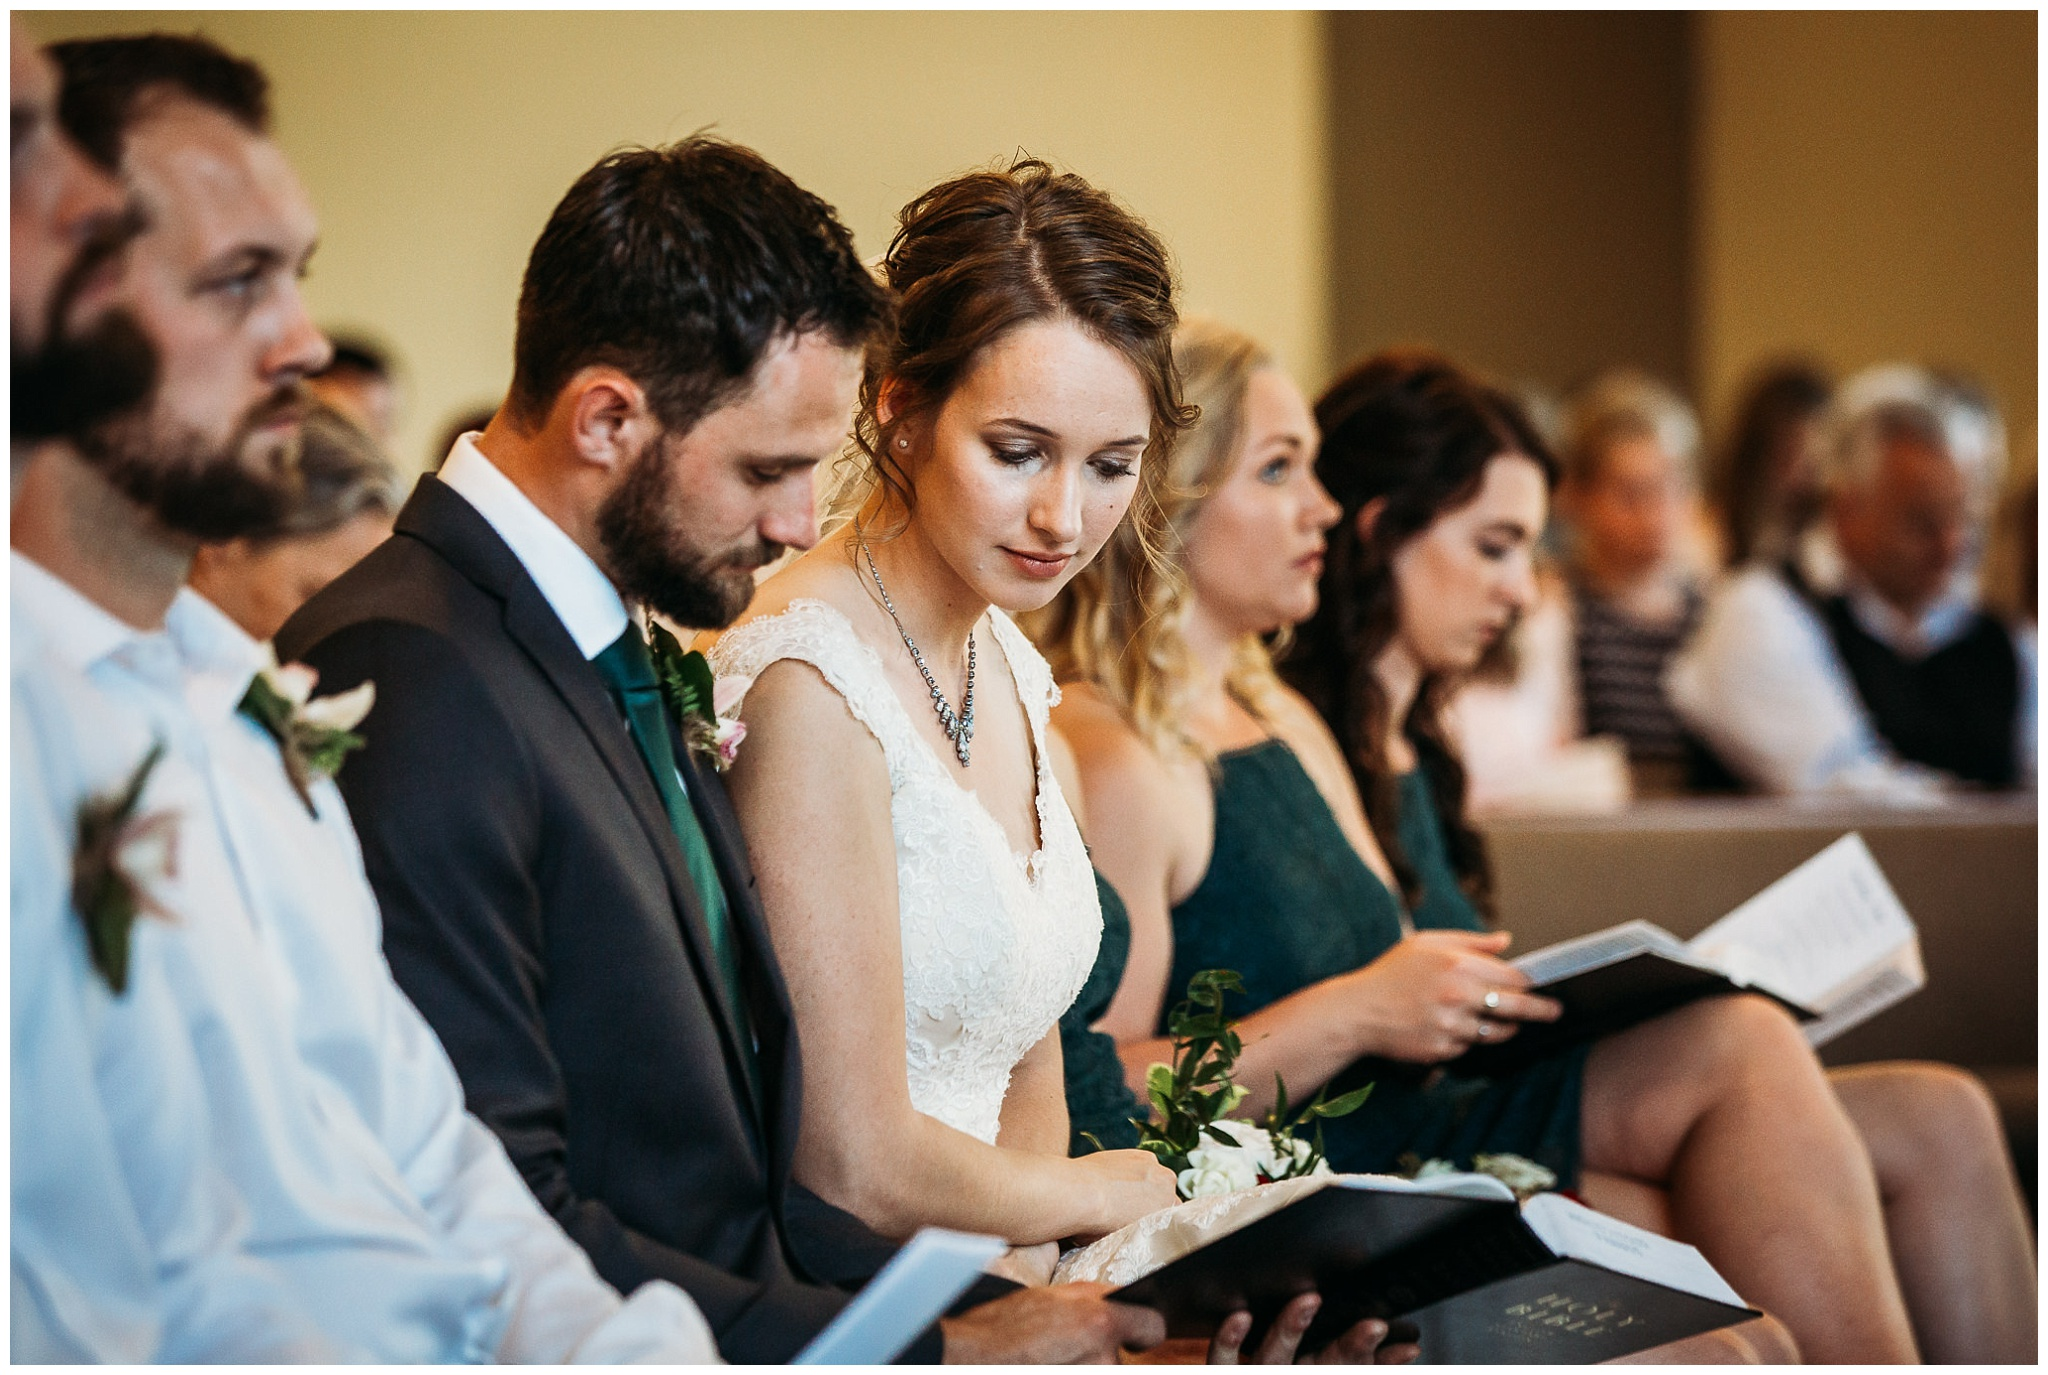 Aldergrove Canadian Reformed Church Wedding Photographer Christian Romantic Candid Documentary Moody_0029.jpg